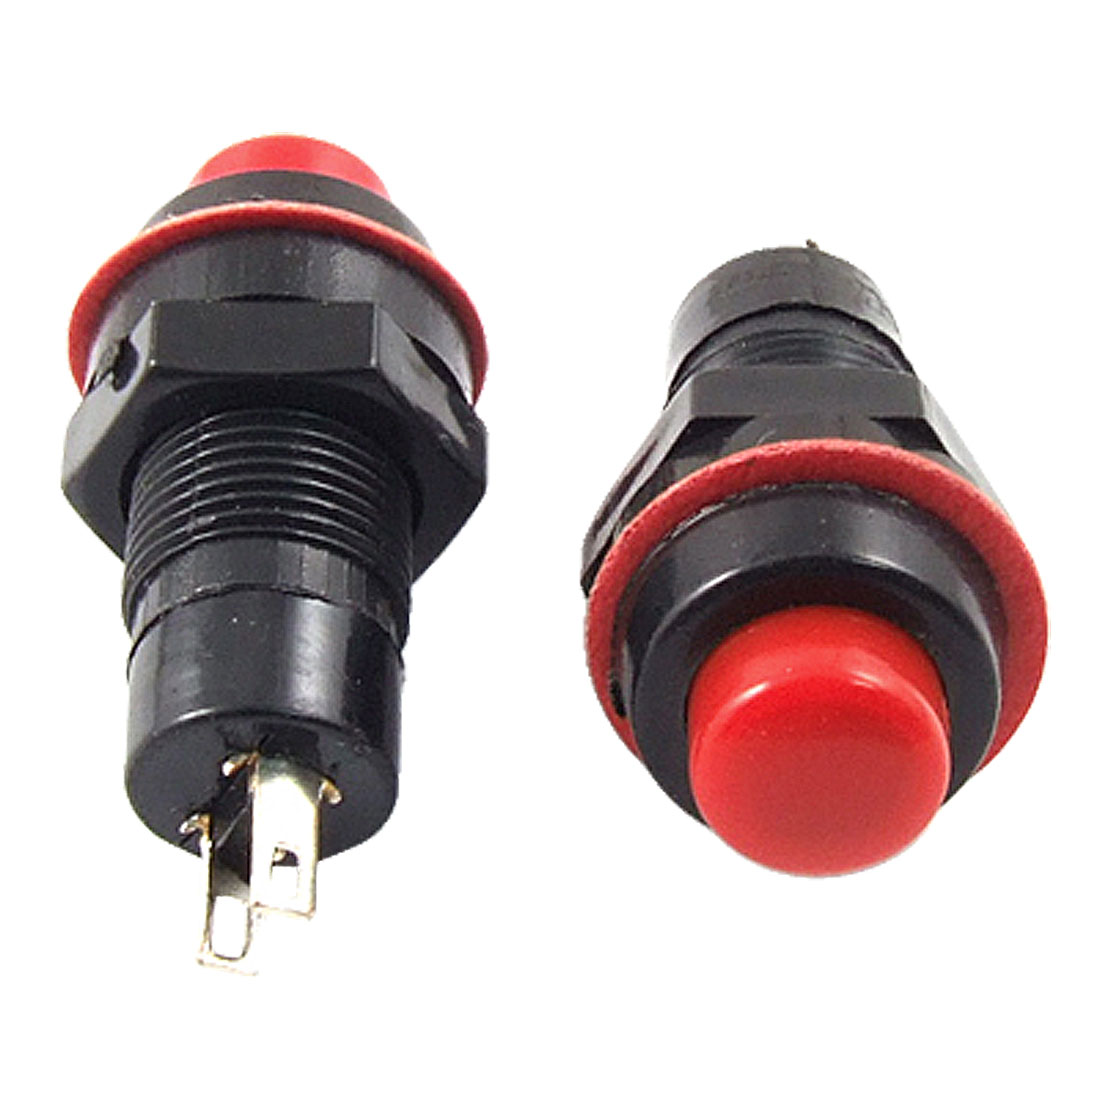 3 x AC 250V 1A 2 Terminals SPST OFF/(ON) NO N/O Round Momentary Push Button Switch Red